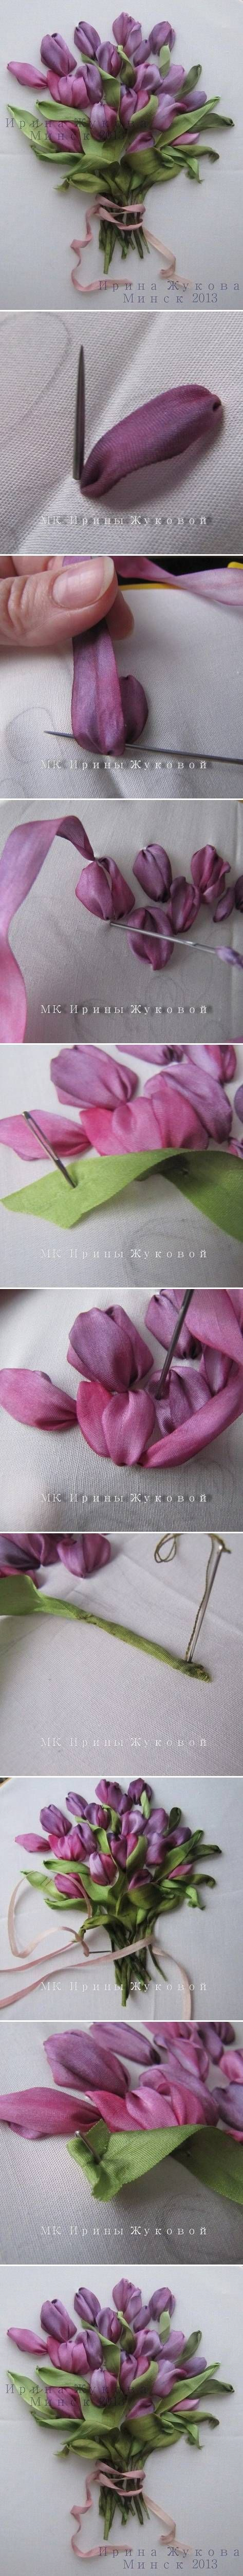 DIY Embroidery Ribbon Flower